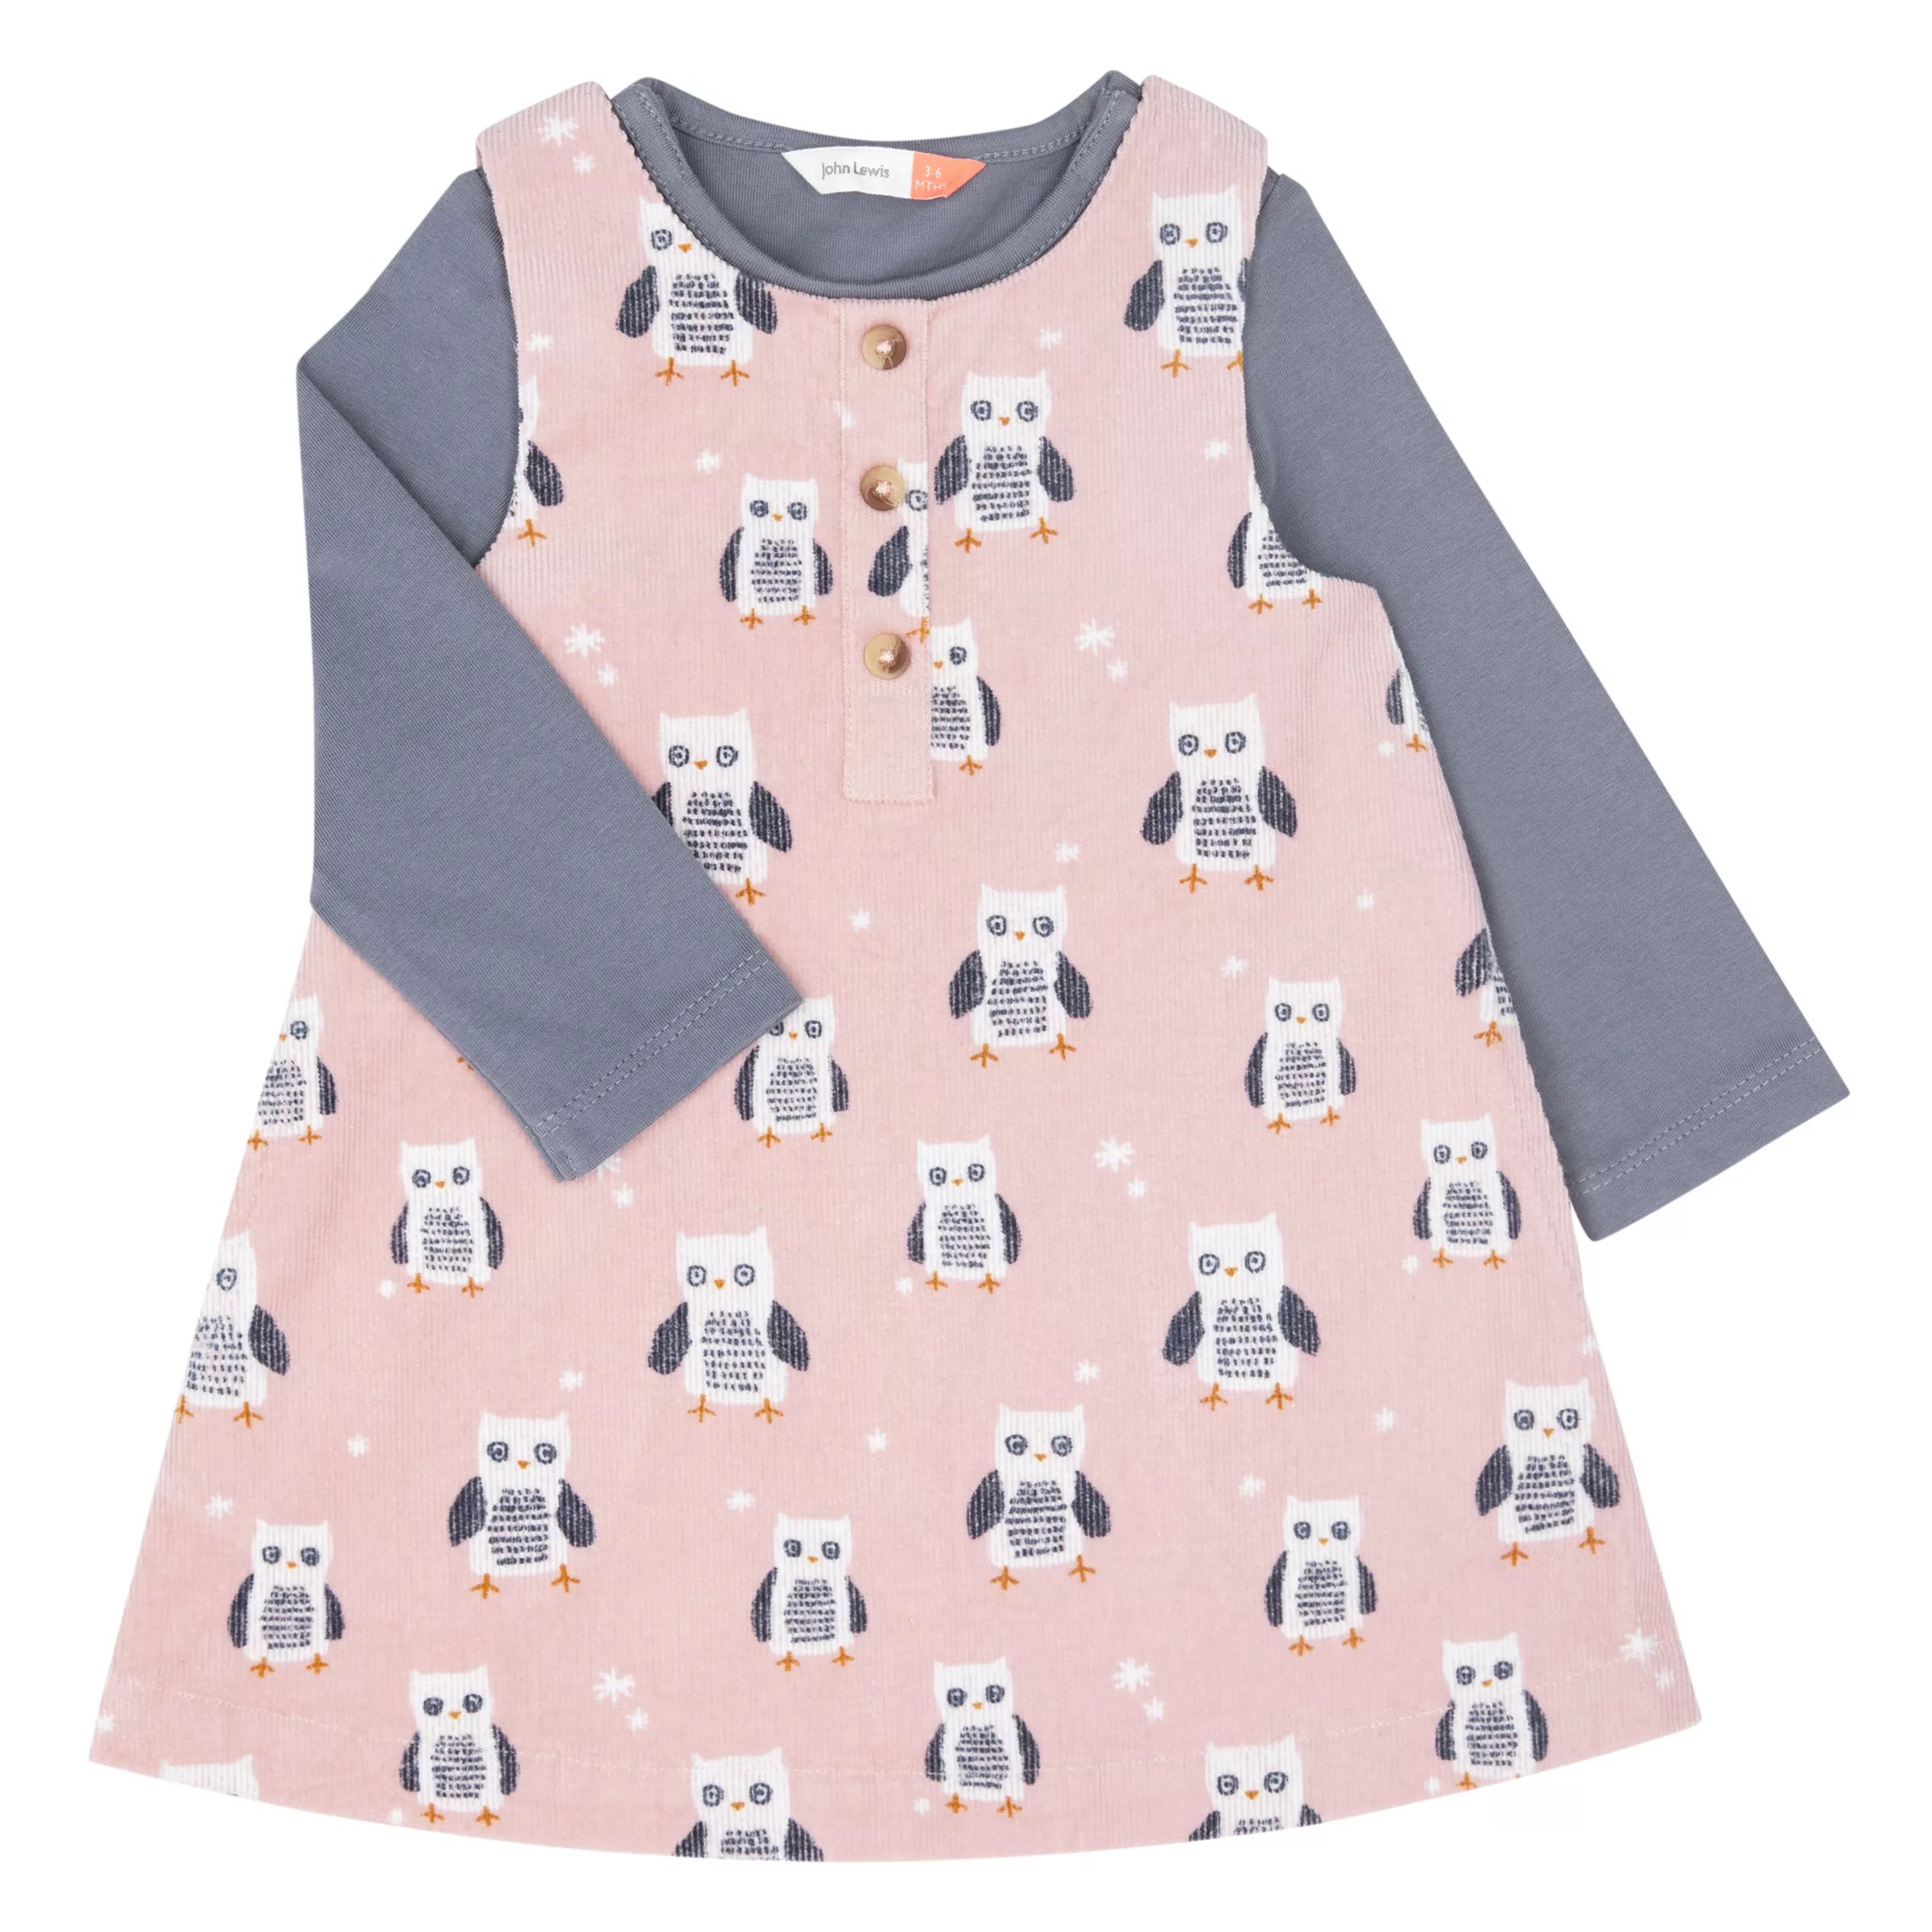 Owl Baby Clothes : clothes, Lewis, Dress, T-Shirt, Partners